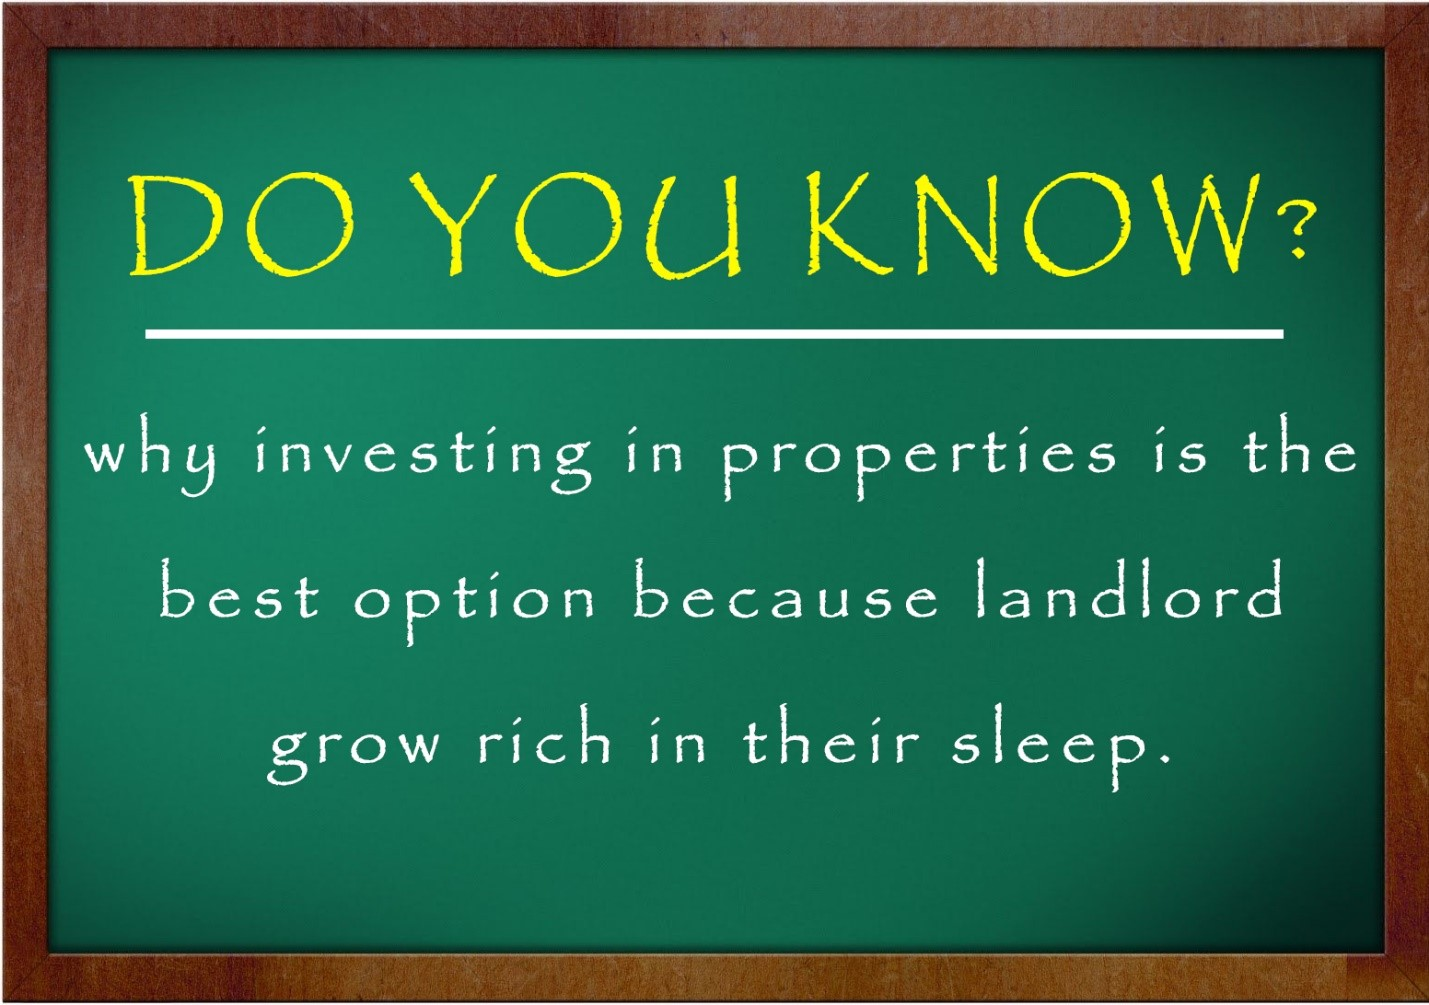 Why Do you invest in properties